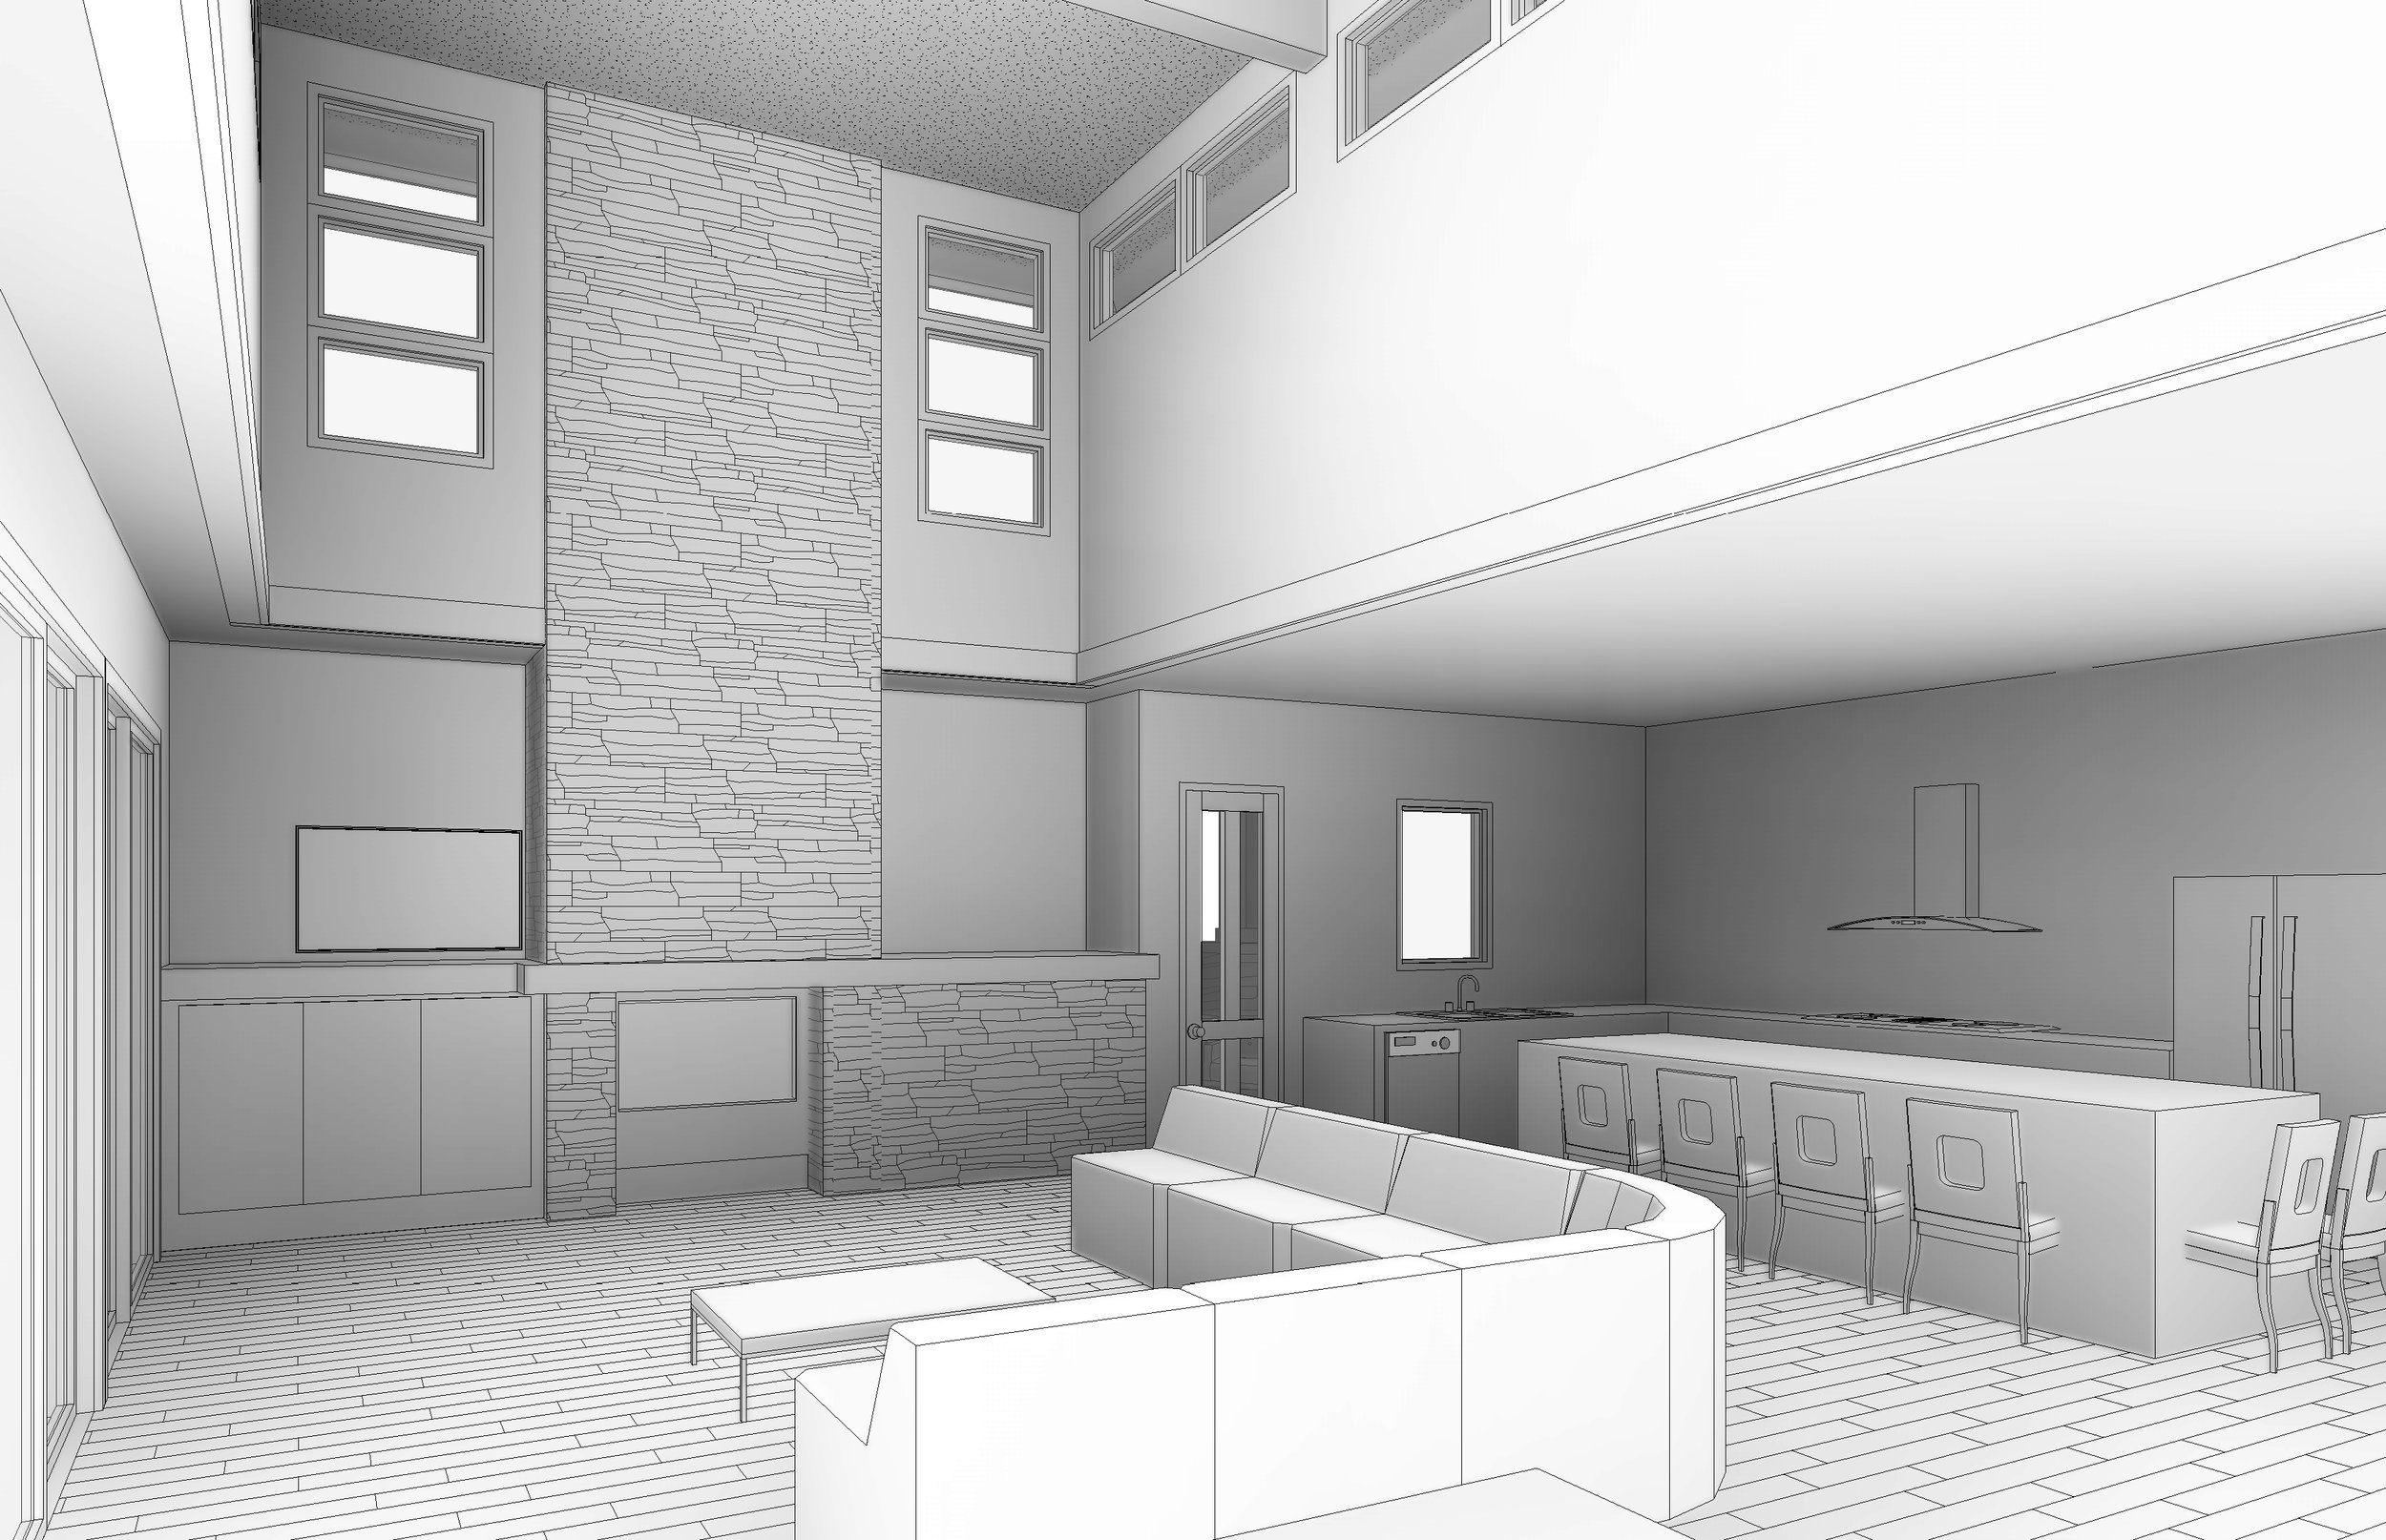 McGee 10 - 3D View - GREAT TO KITCHEN 2.jpg